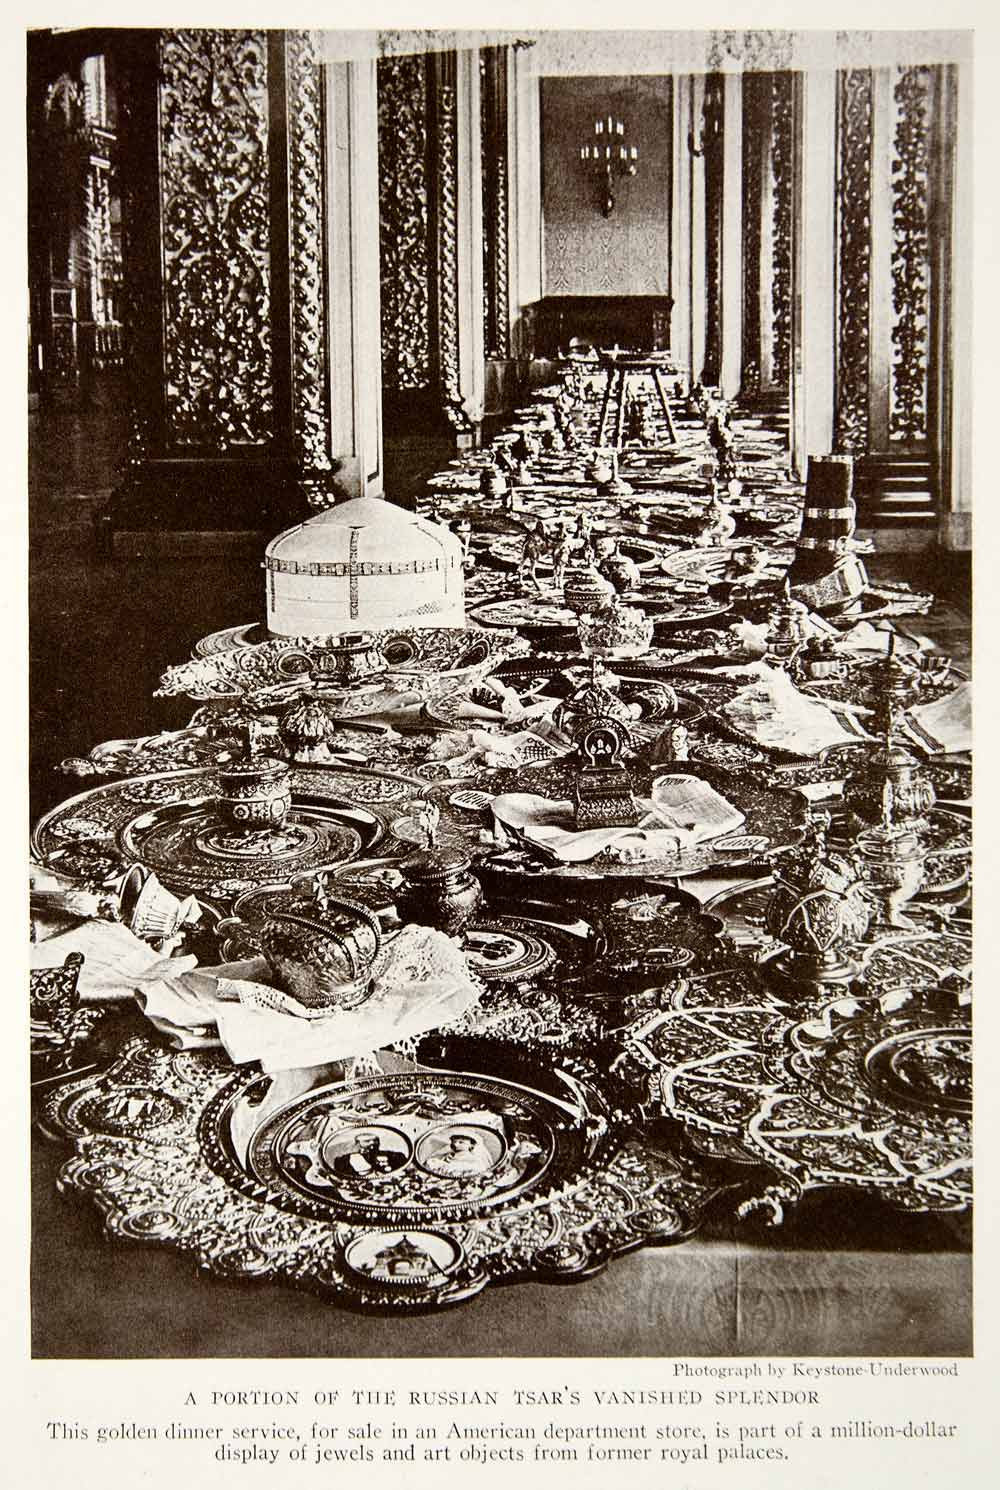 1933 Print Russian Tzar Alexander Dinner Service Dishes Plates Wealth NGMA3